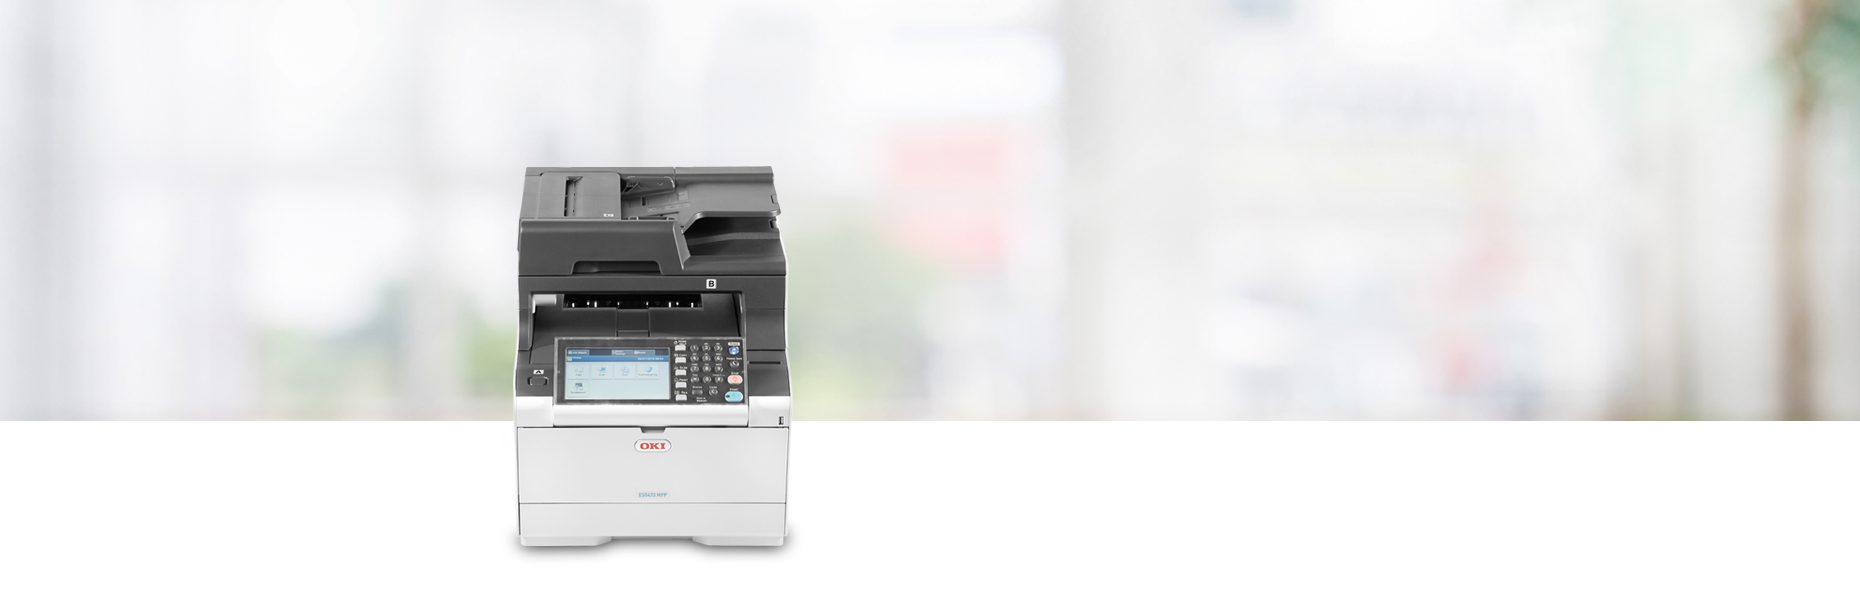 OKI ES5473 Multifunction Printer}